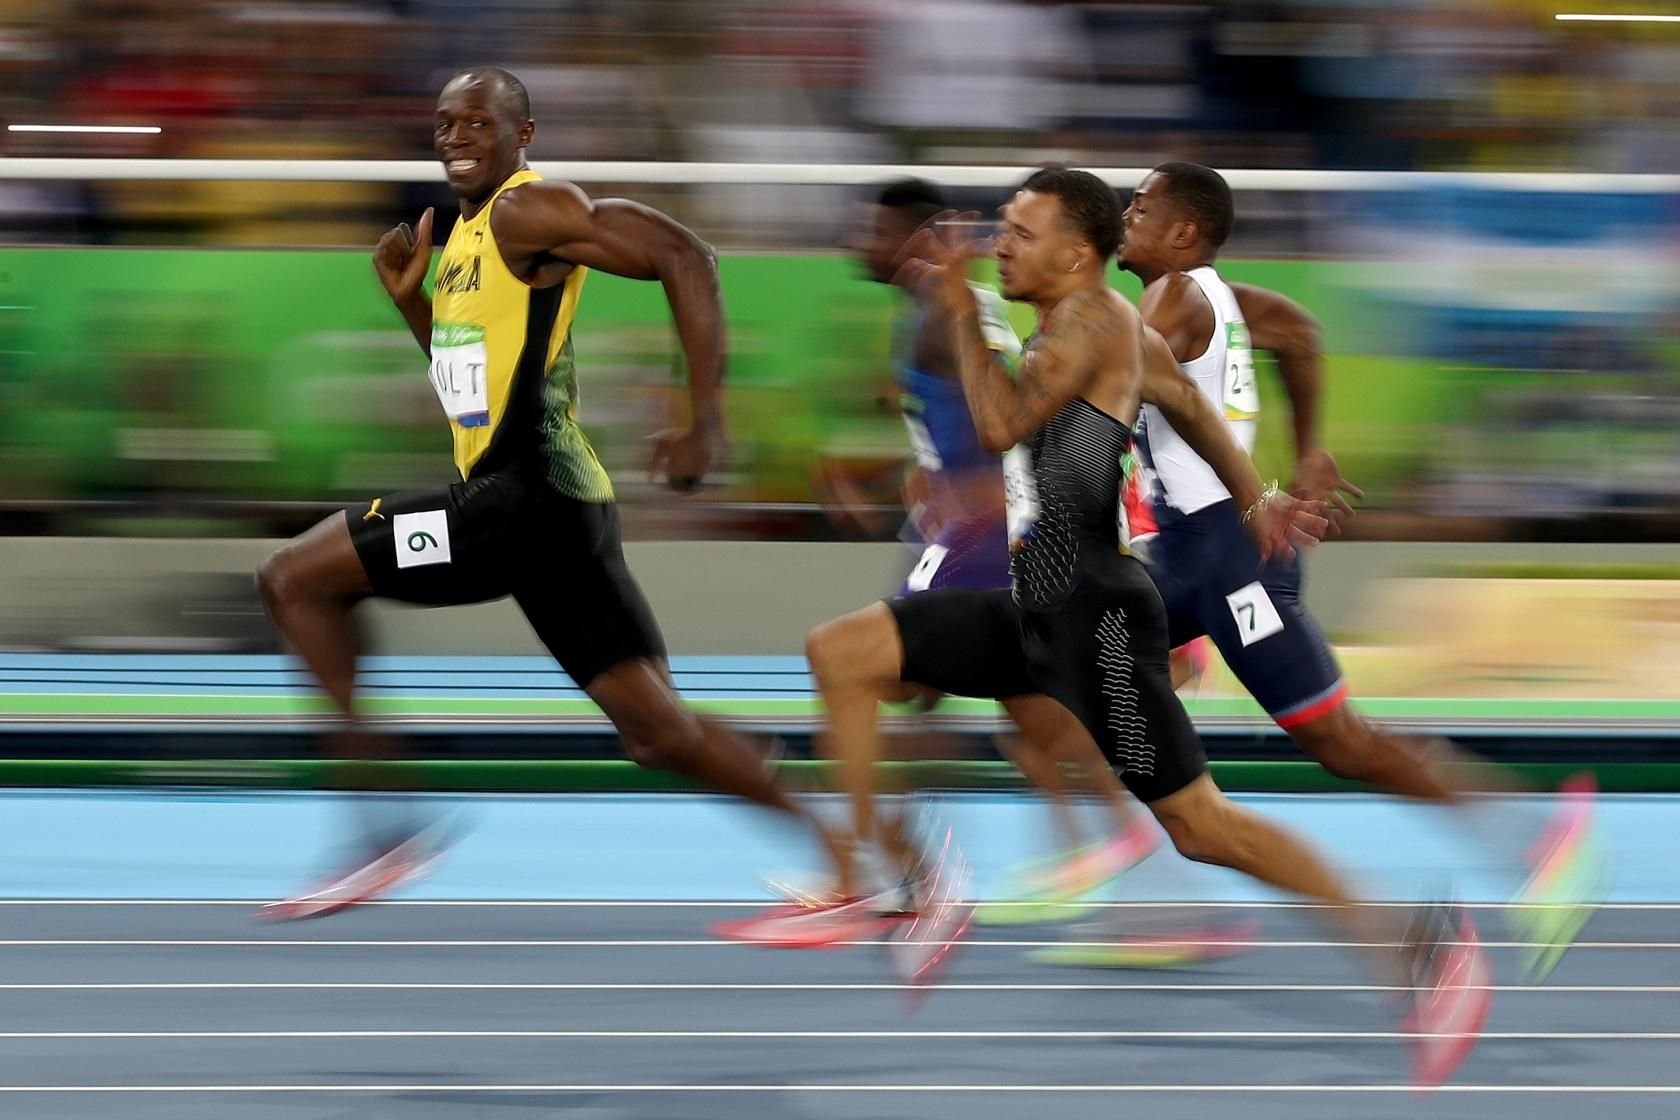 The Story of the Happiest Photo of Usain Bolt #photography #photo http://time.com/4452585/usain-bolt-2016-rio-olympics/